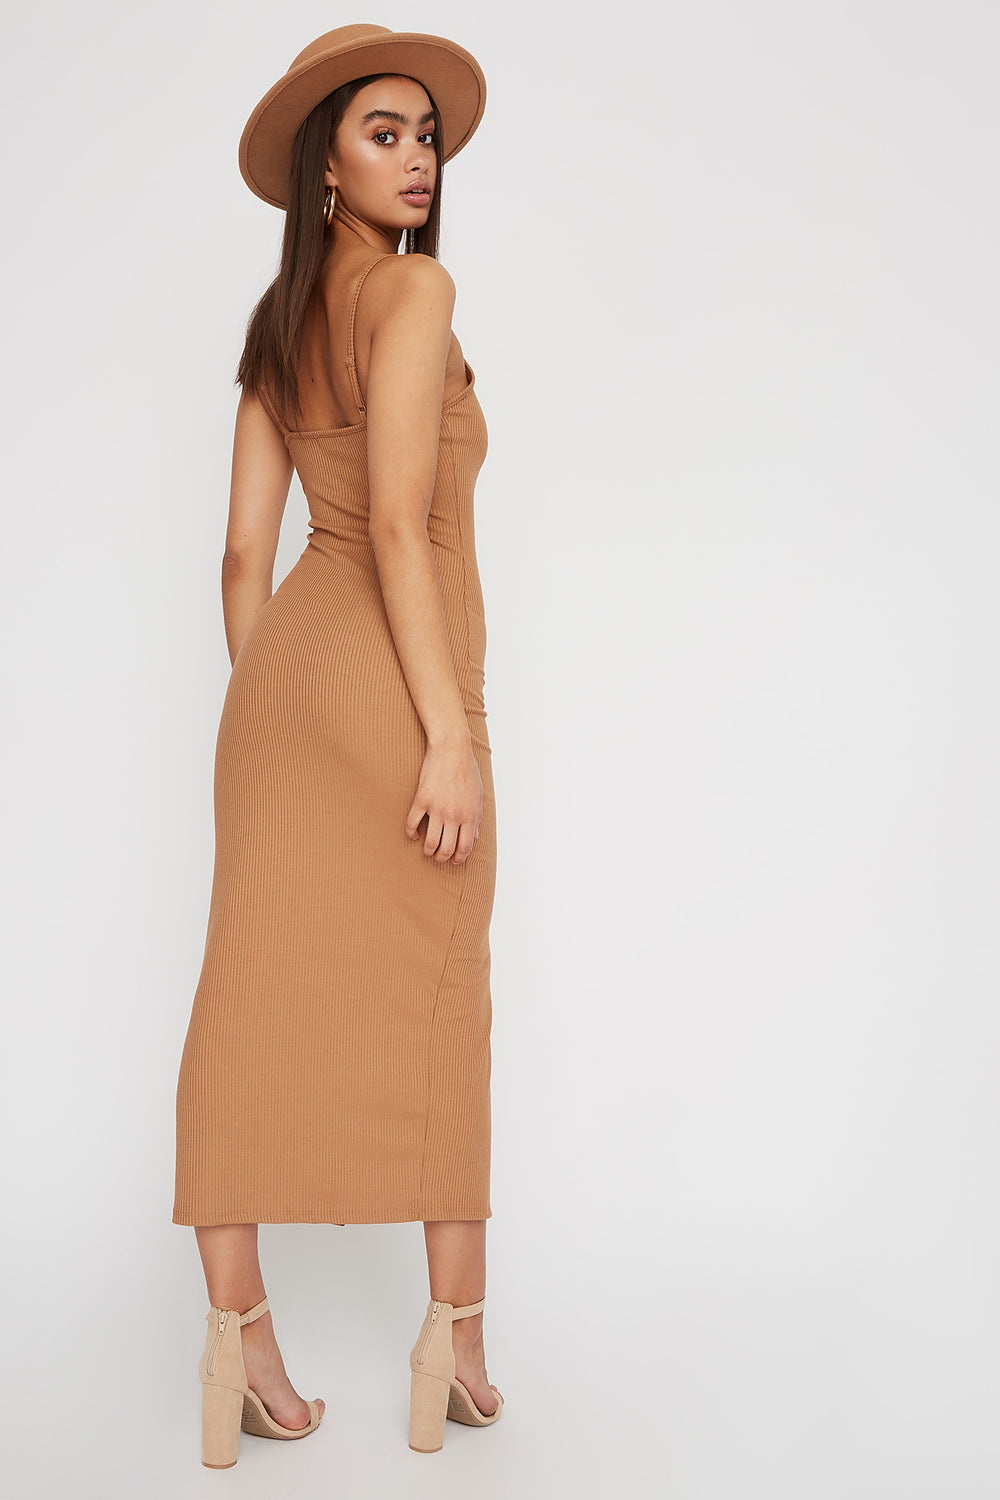 Ribbed Button Cut Out Sleeveless Midi Dress Tan